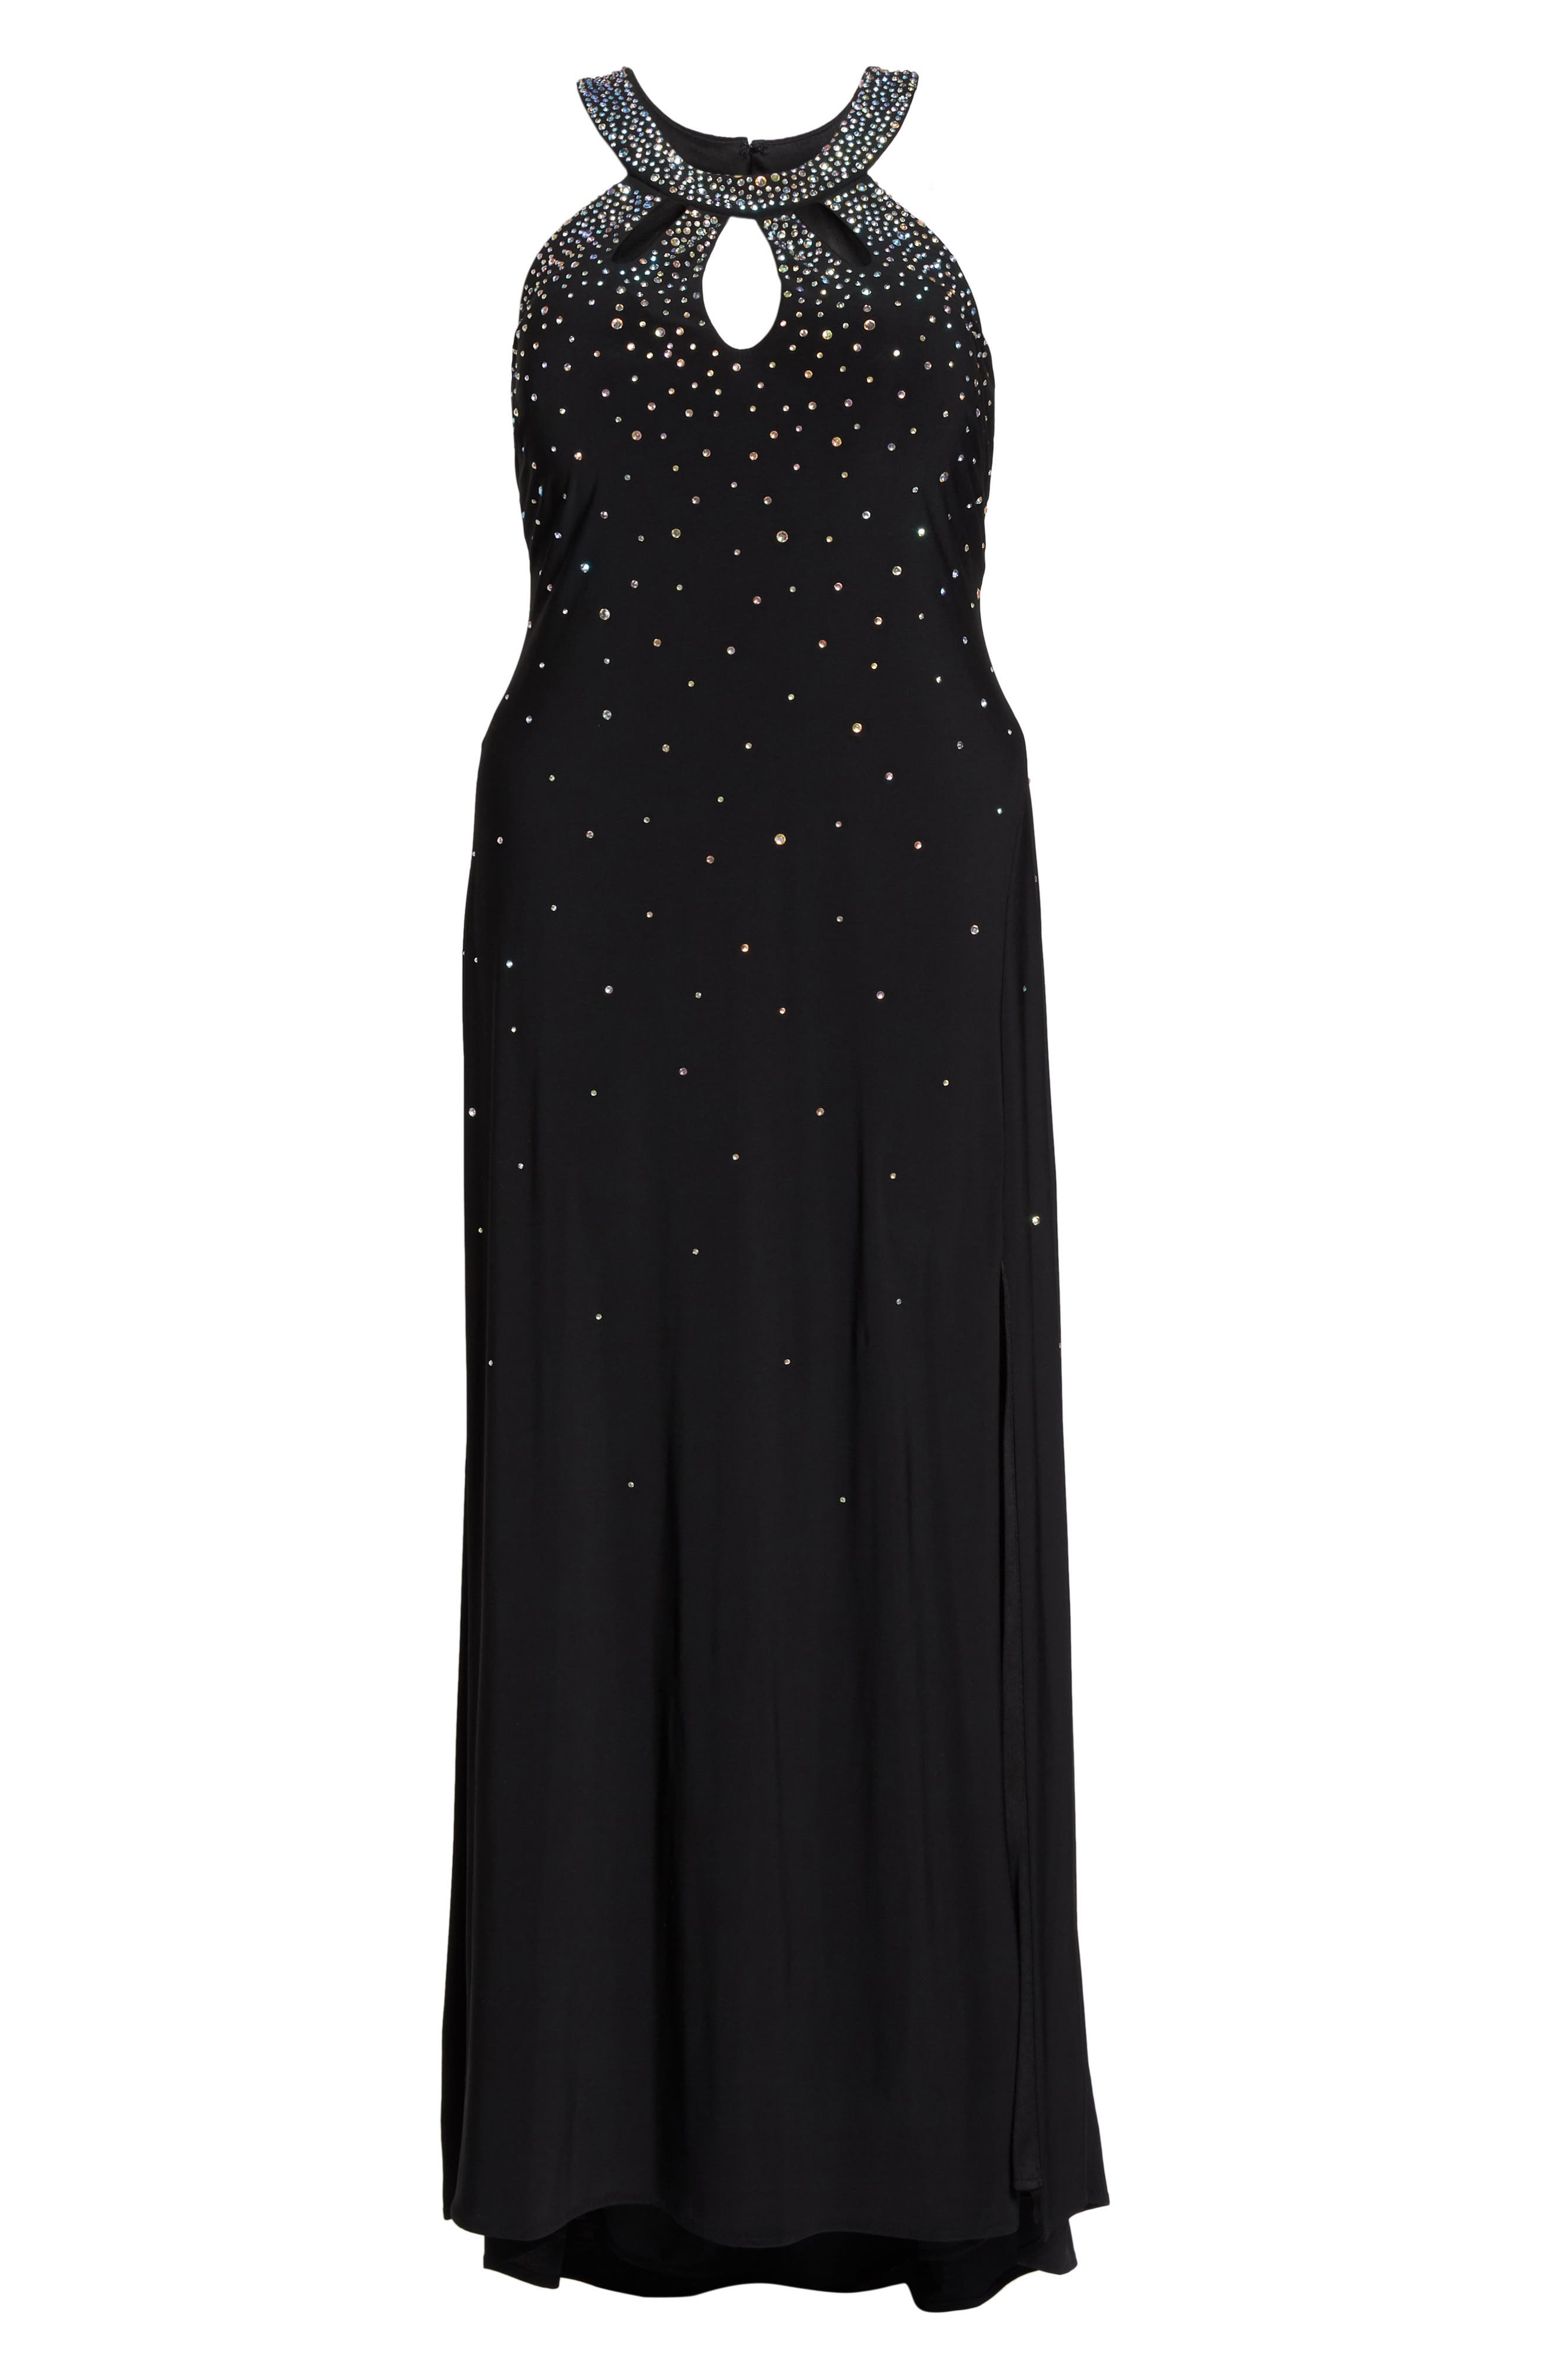 MORGAN & CO.,                             Heat Sealed Stone Knit Gown,                             Alternate thumbnail 6, color,                             BLACK